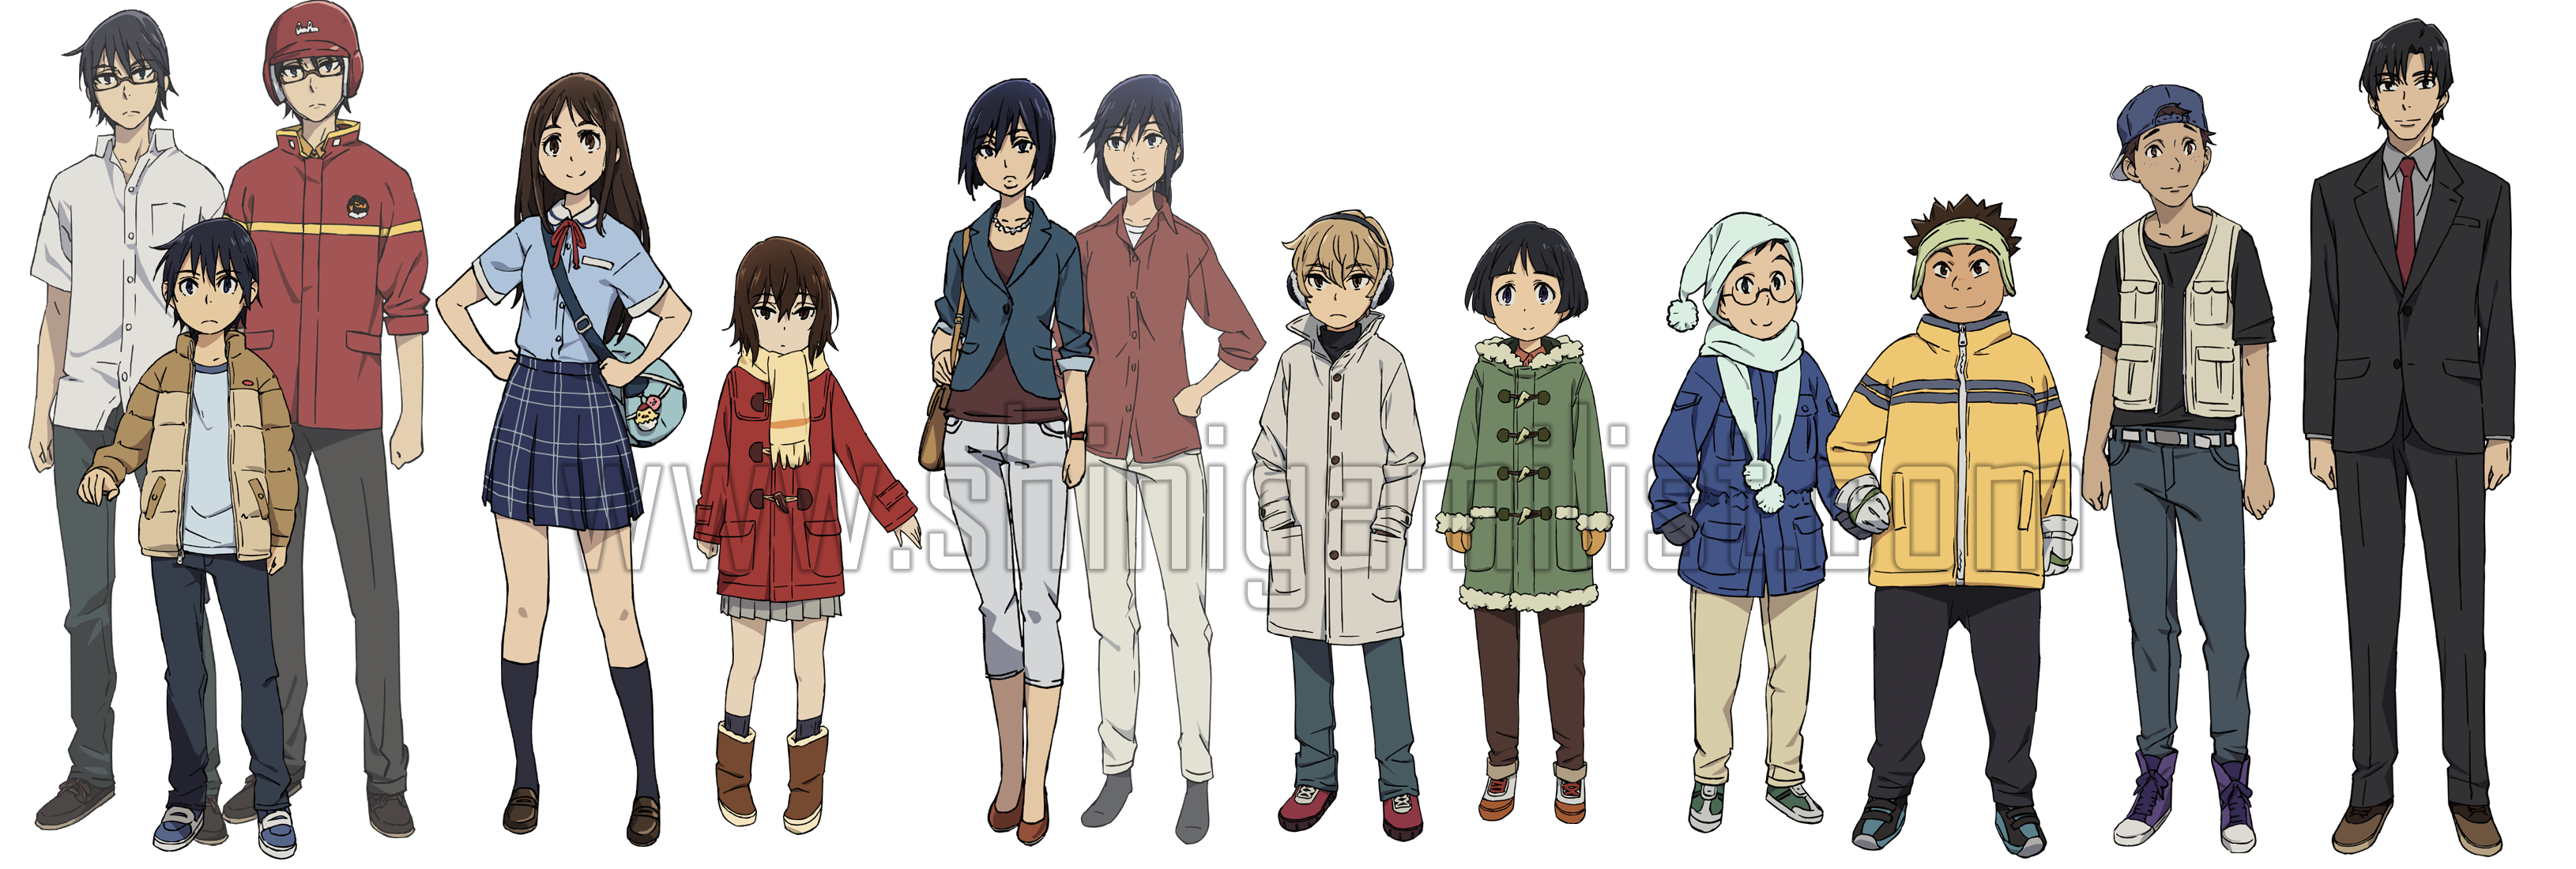 Images Of Erased Anime Characters Hiromi